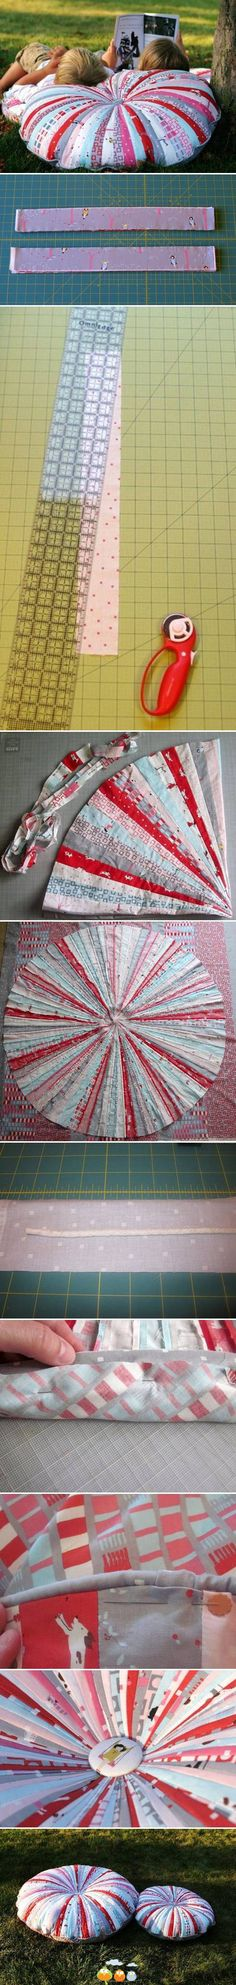 Fabric scraps extra large oversized circular overstuffed pillow (photo) tutorial